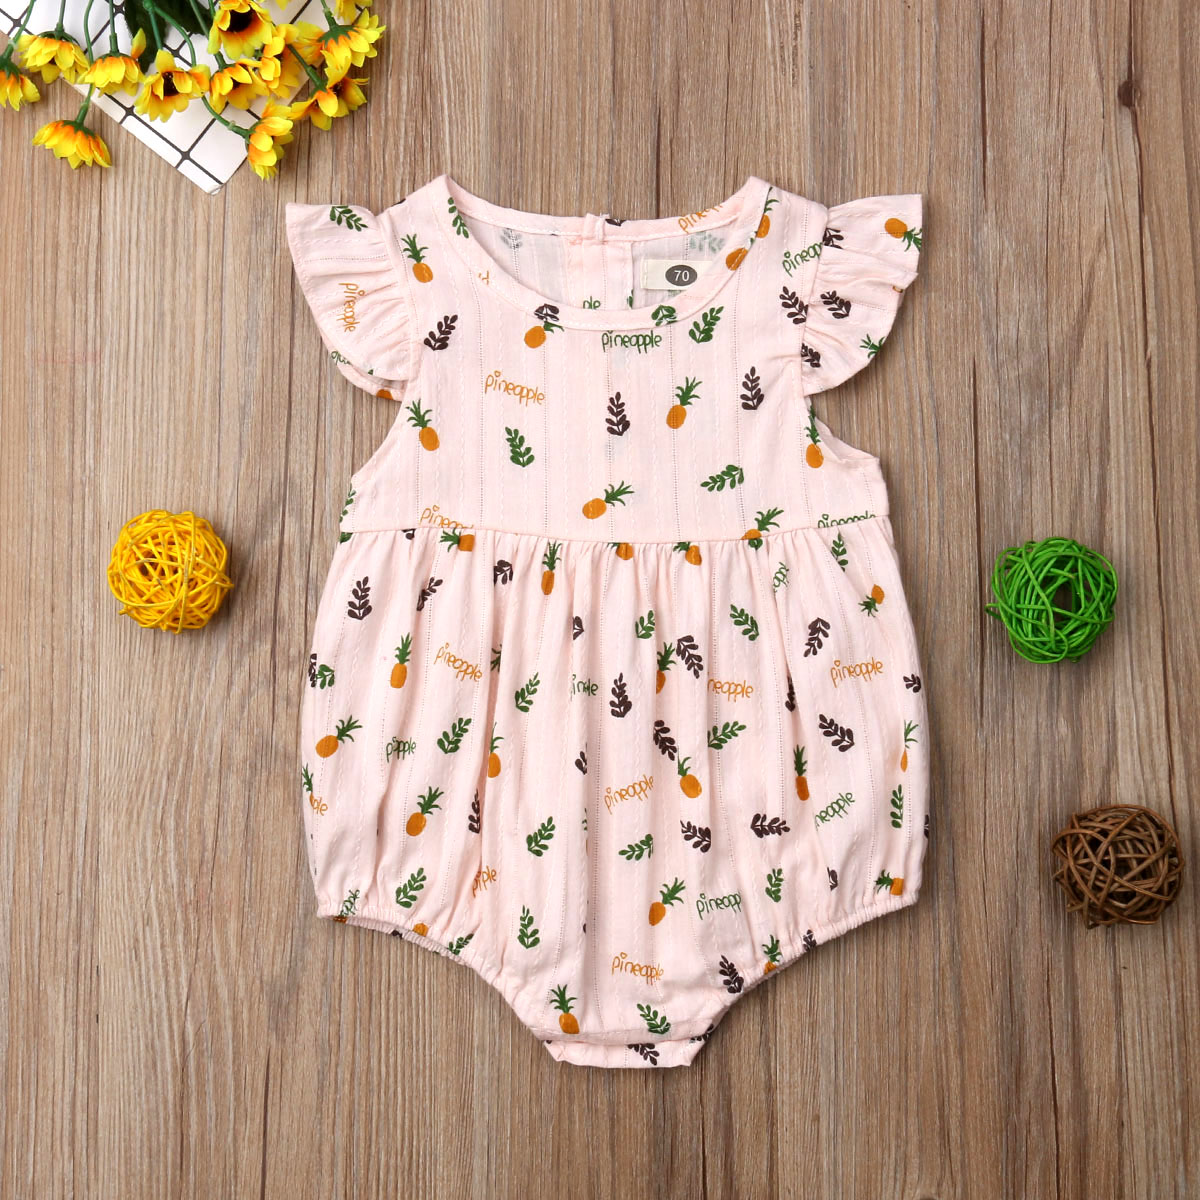 Baby Onesies The Cut Fruit of Pineapple 100/% Cotton Baby Jumpsuit Super Power Short Sleeve Bodysuit